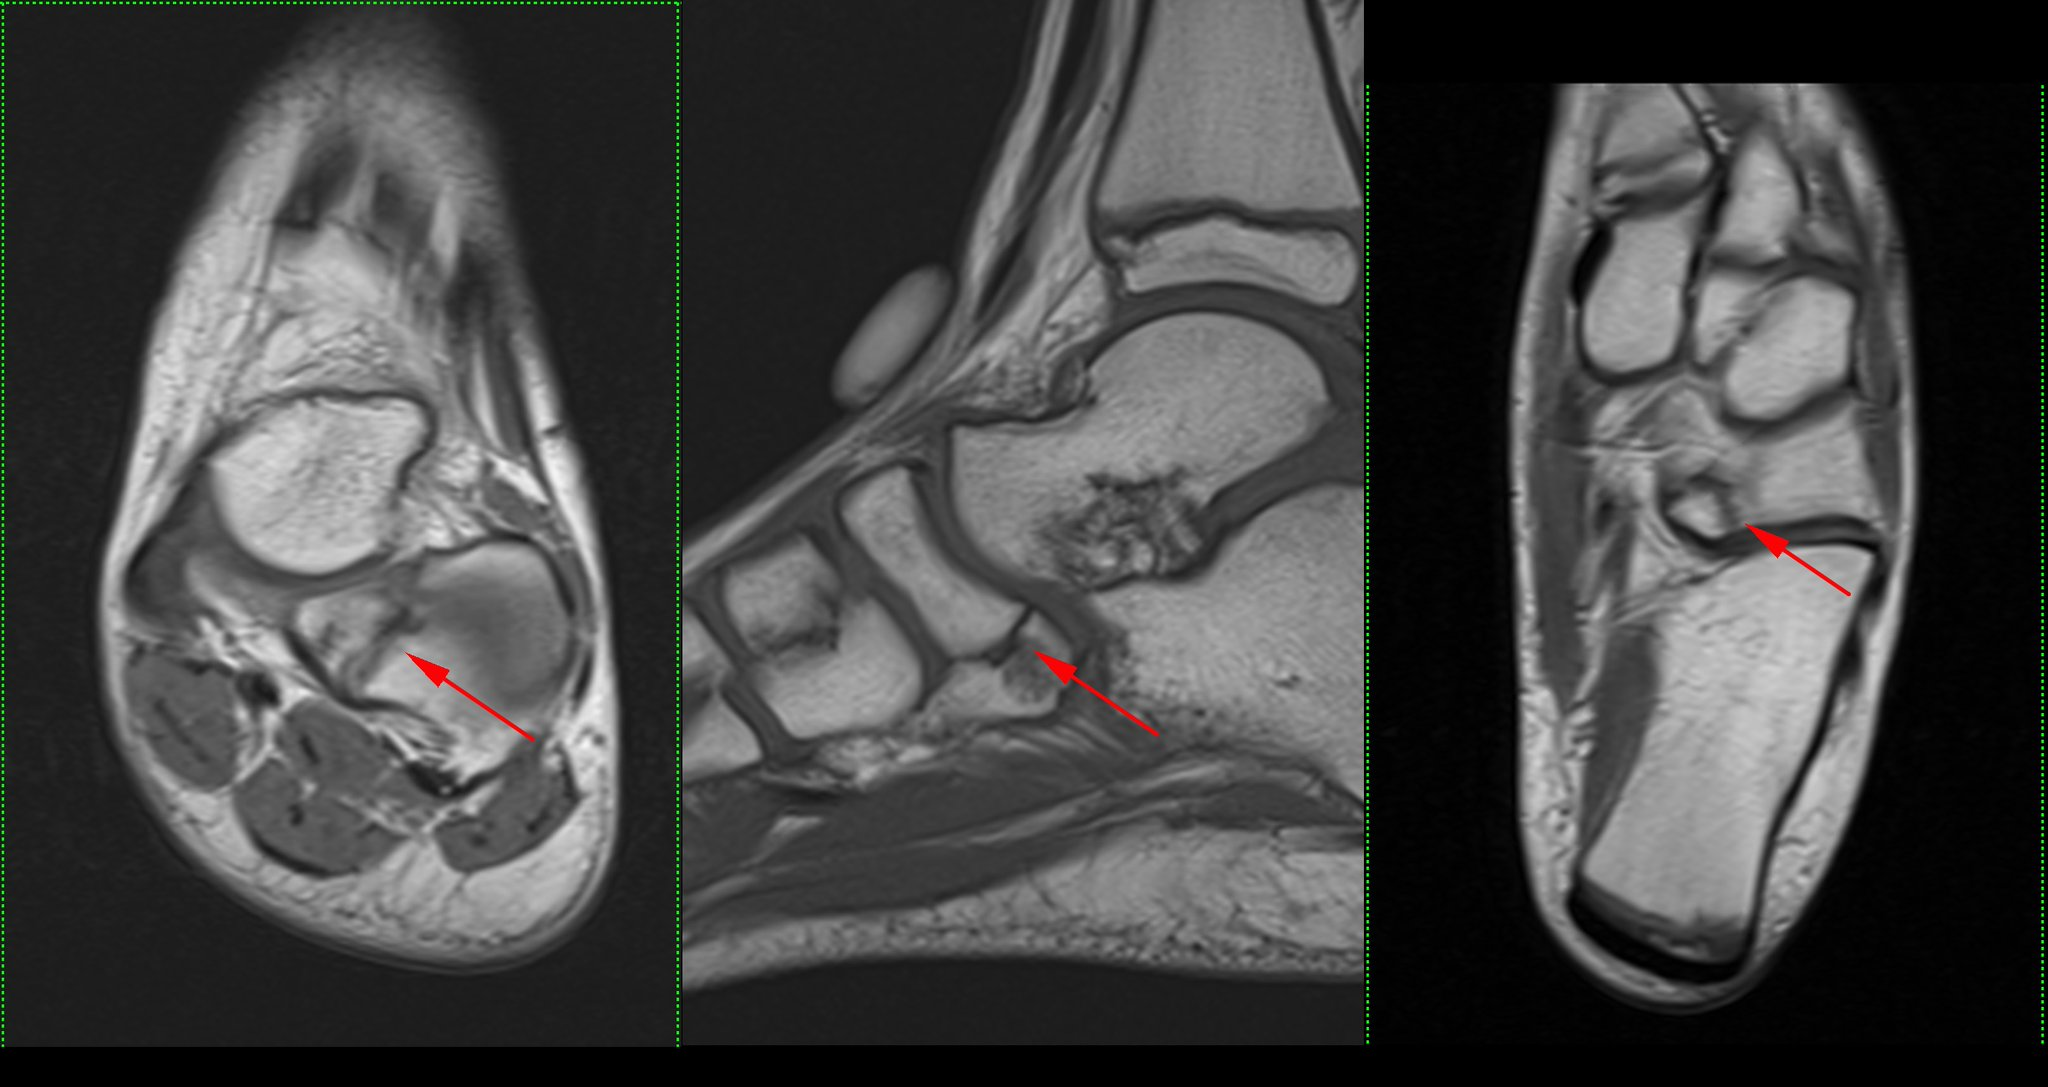 Ara Kassarjian Md Frcpc On Twitter As Promised To Cquirkmsk And Smfowler Shaun Cuboid Navicular Coalition In An 11 Y O Barely Any Edema At The Synchondrosis In This Case Https T Co 4i39ofzlyy Https T Co 8rmboo3yky Https T Co Vh30q9cqed Related online courses on physioplus. twitter